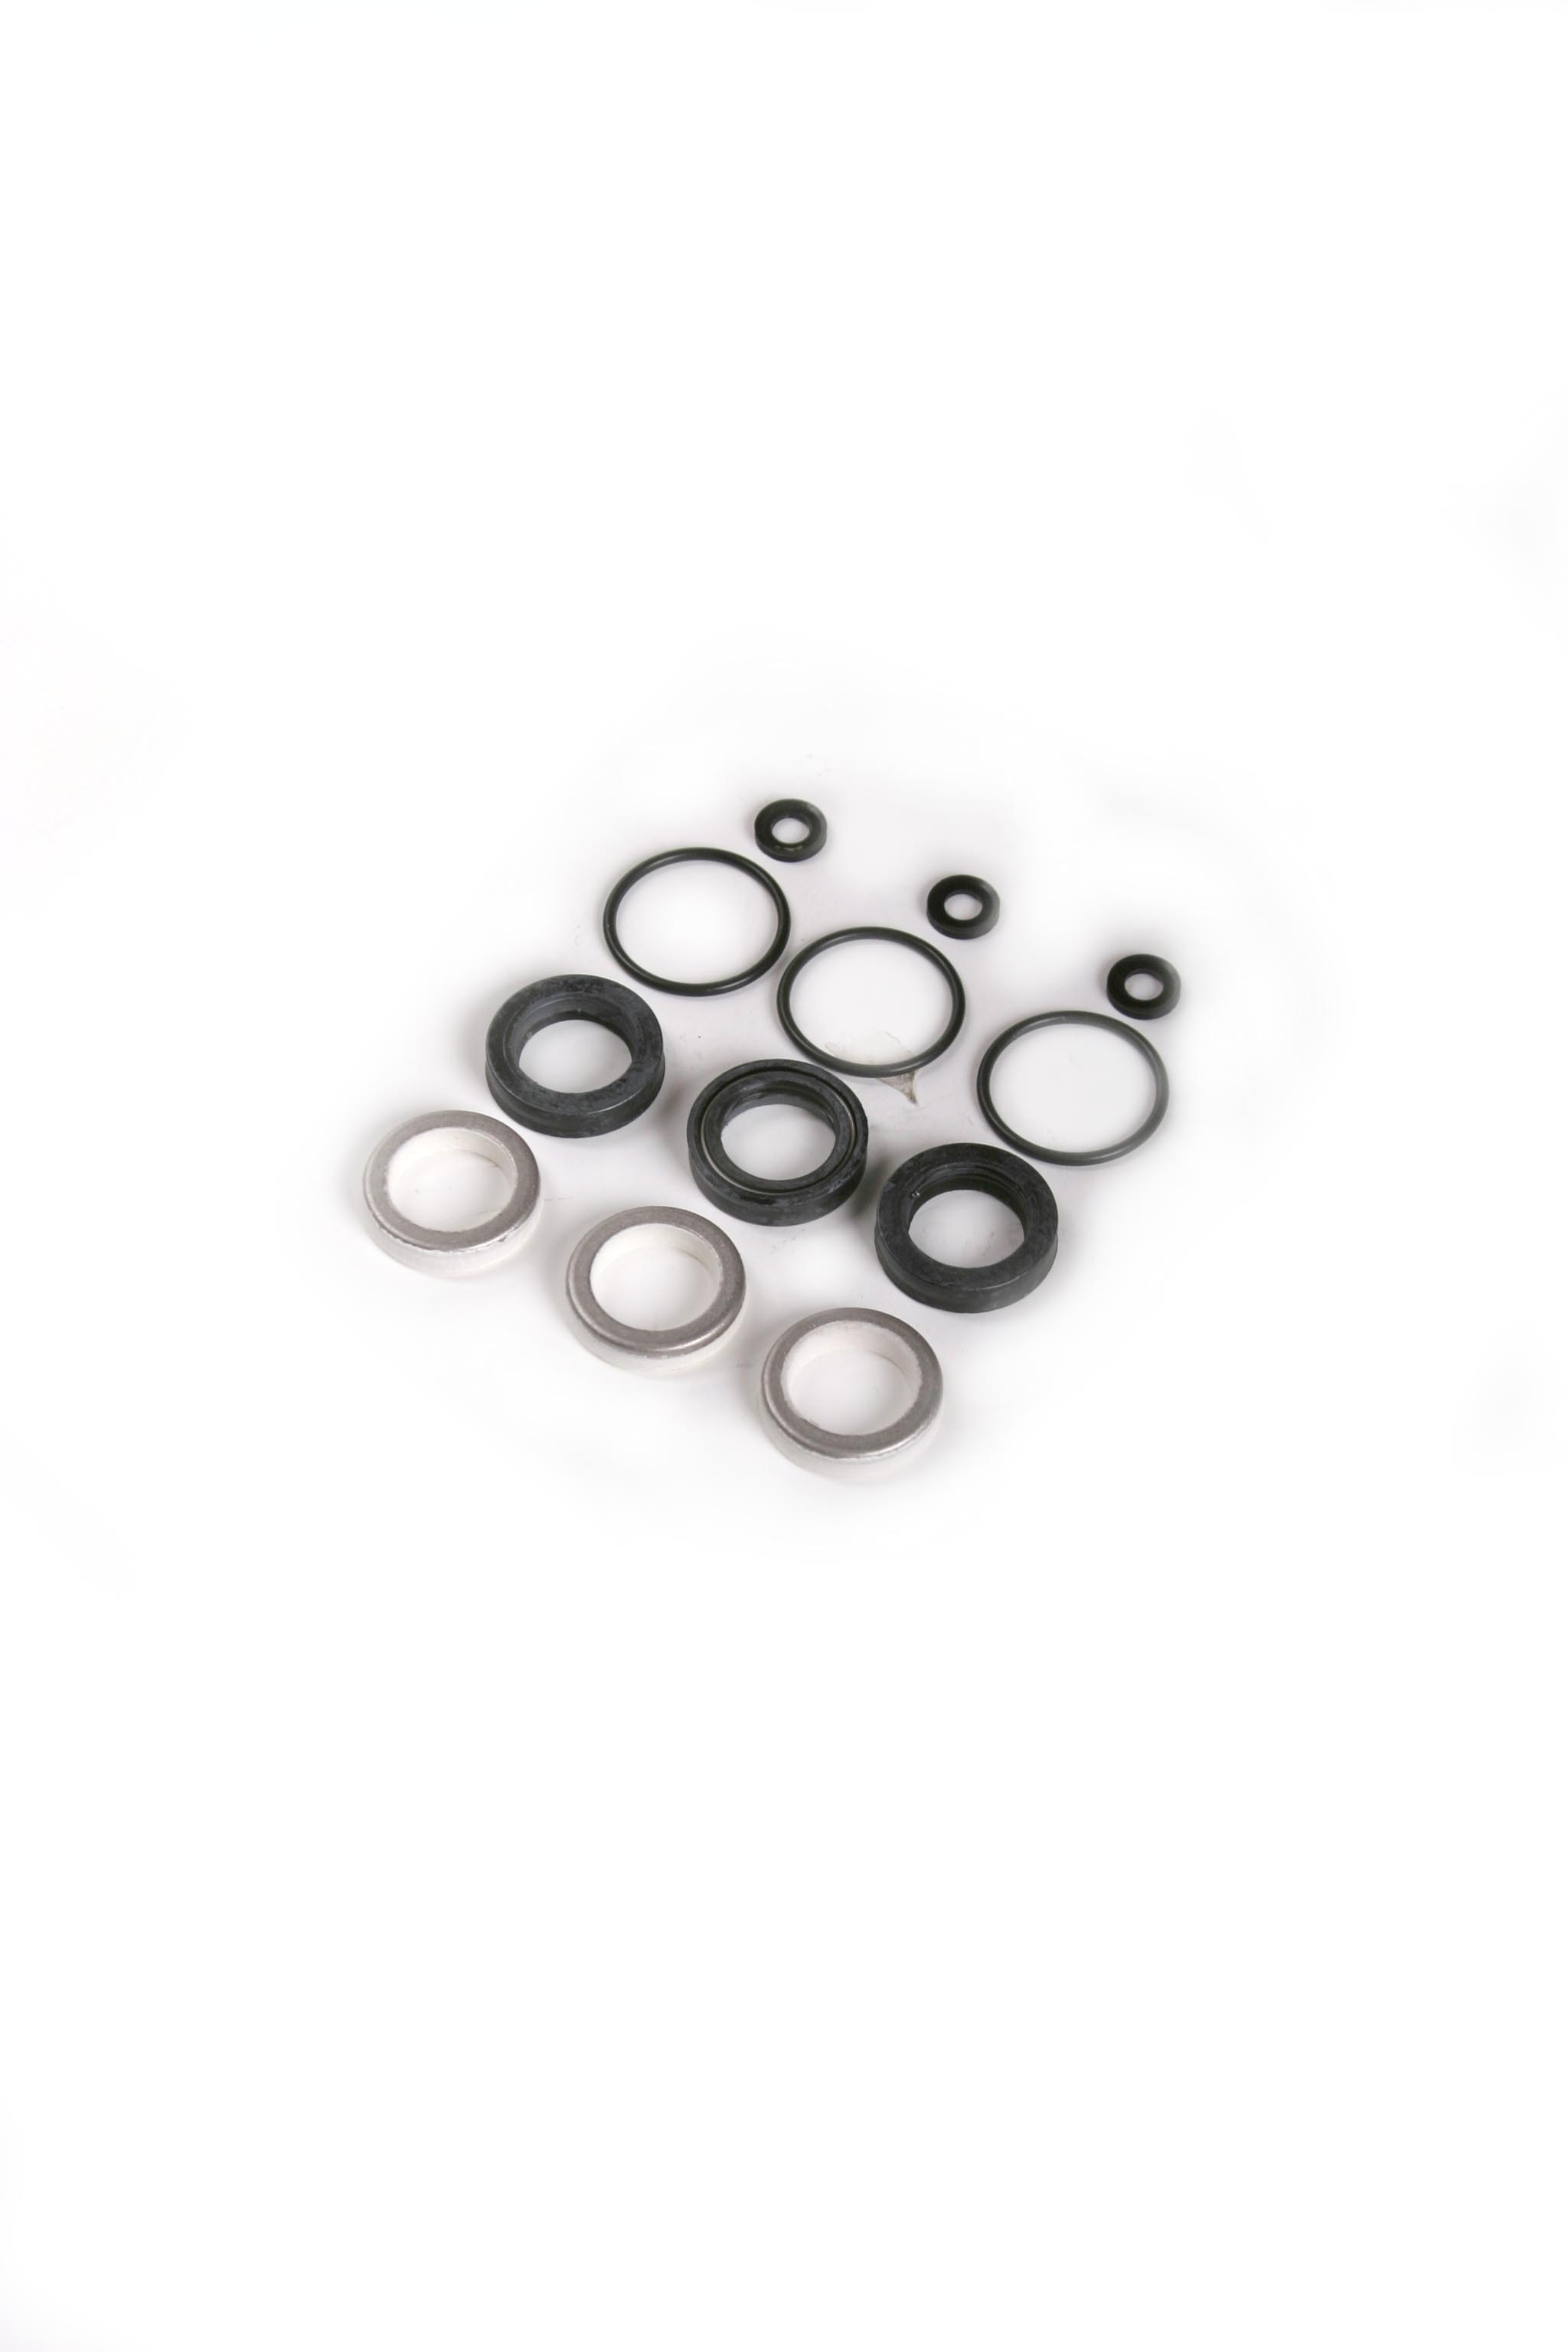 CAT Pump 3CP Seal Kit - New Style   078-271